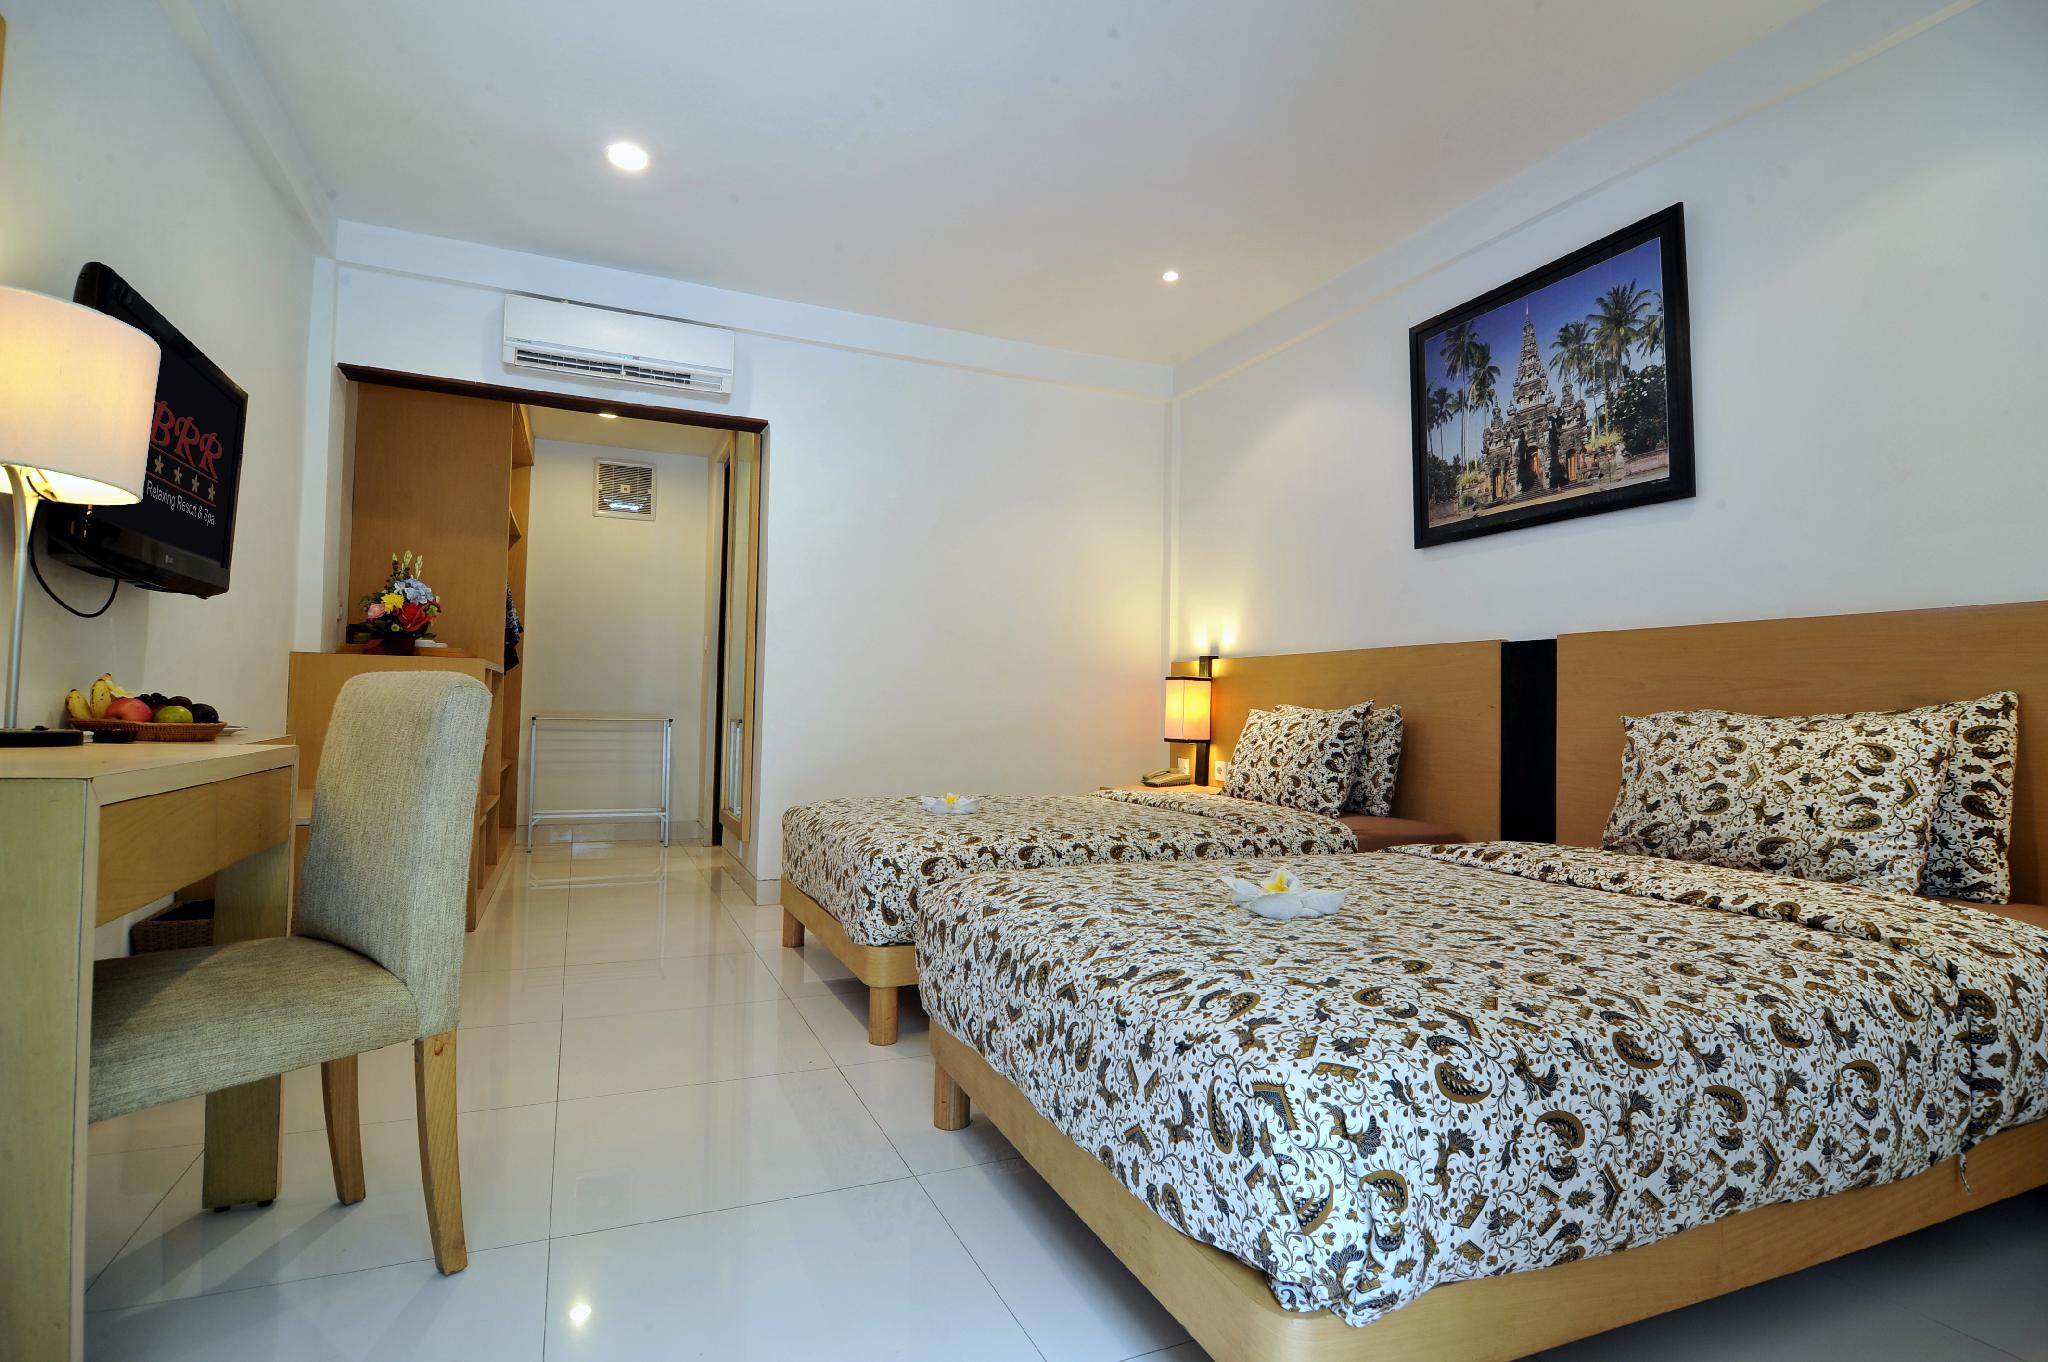 Rumah Ala Korea Selatan Bali Relaxing Resort Spa Room Deals Reviews Photos Indonesia